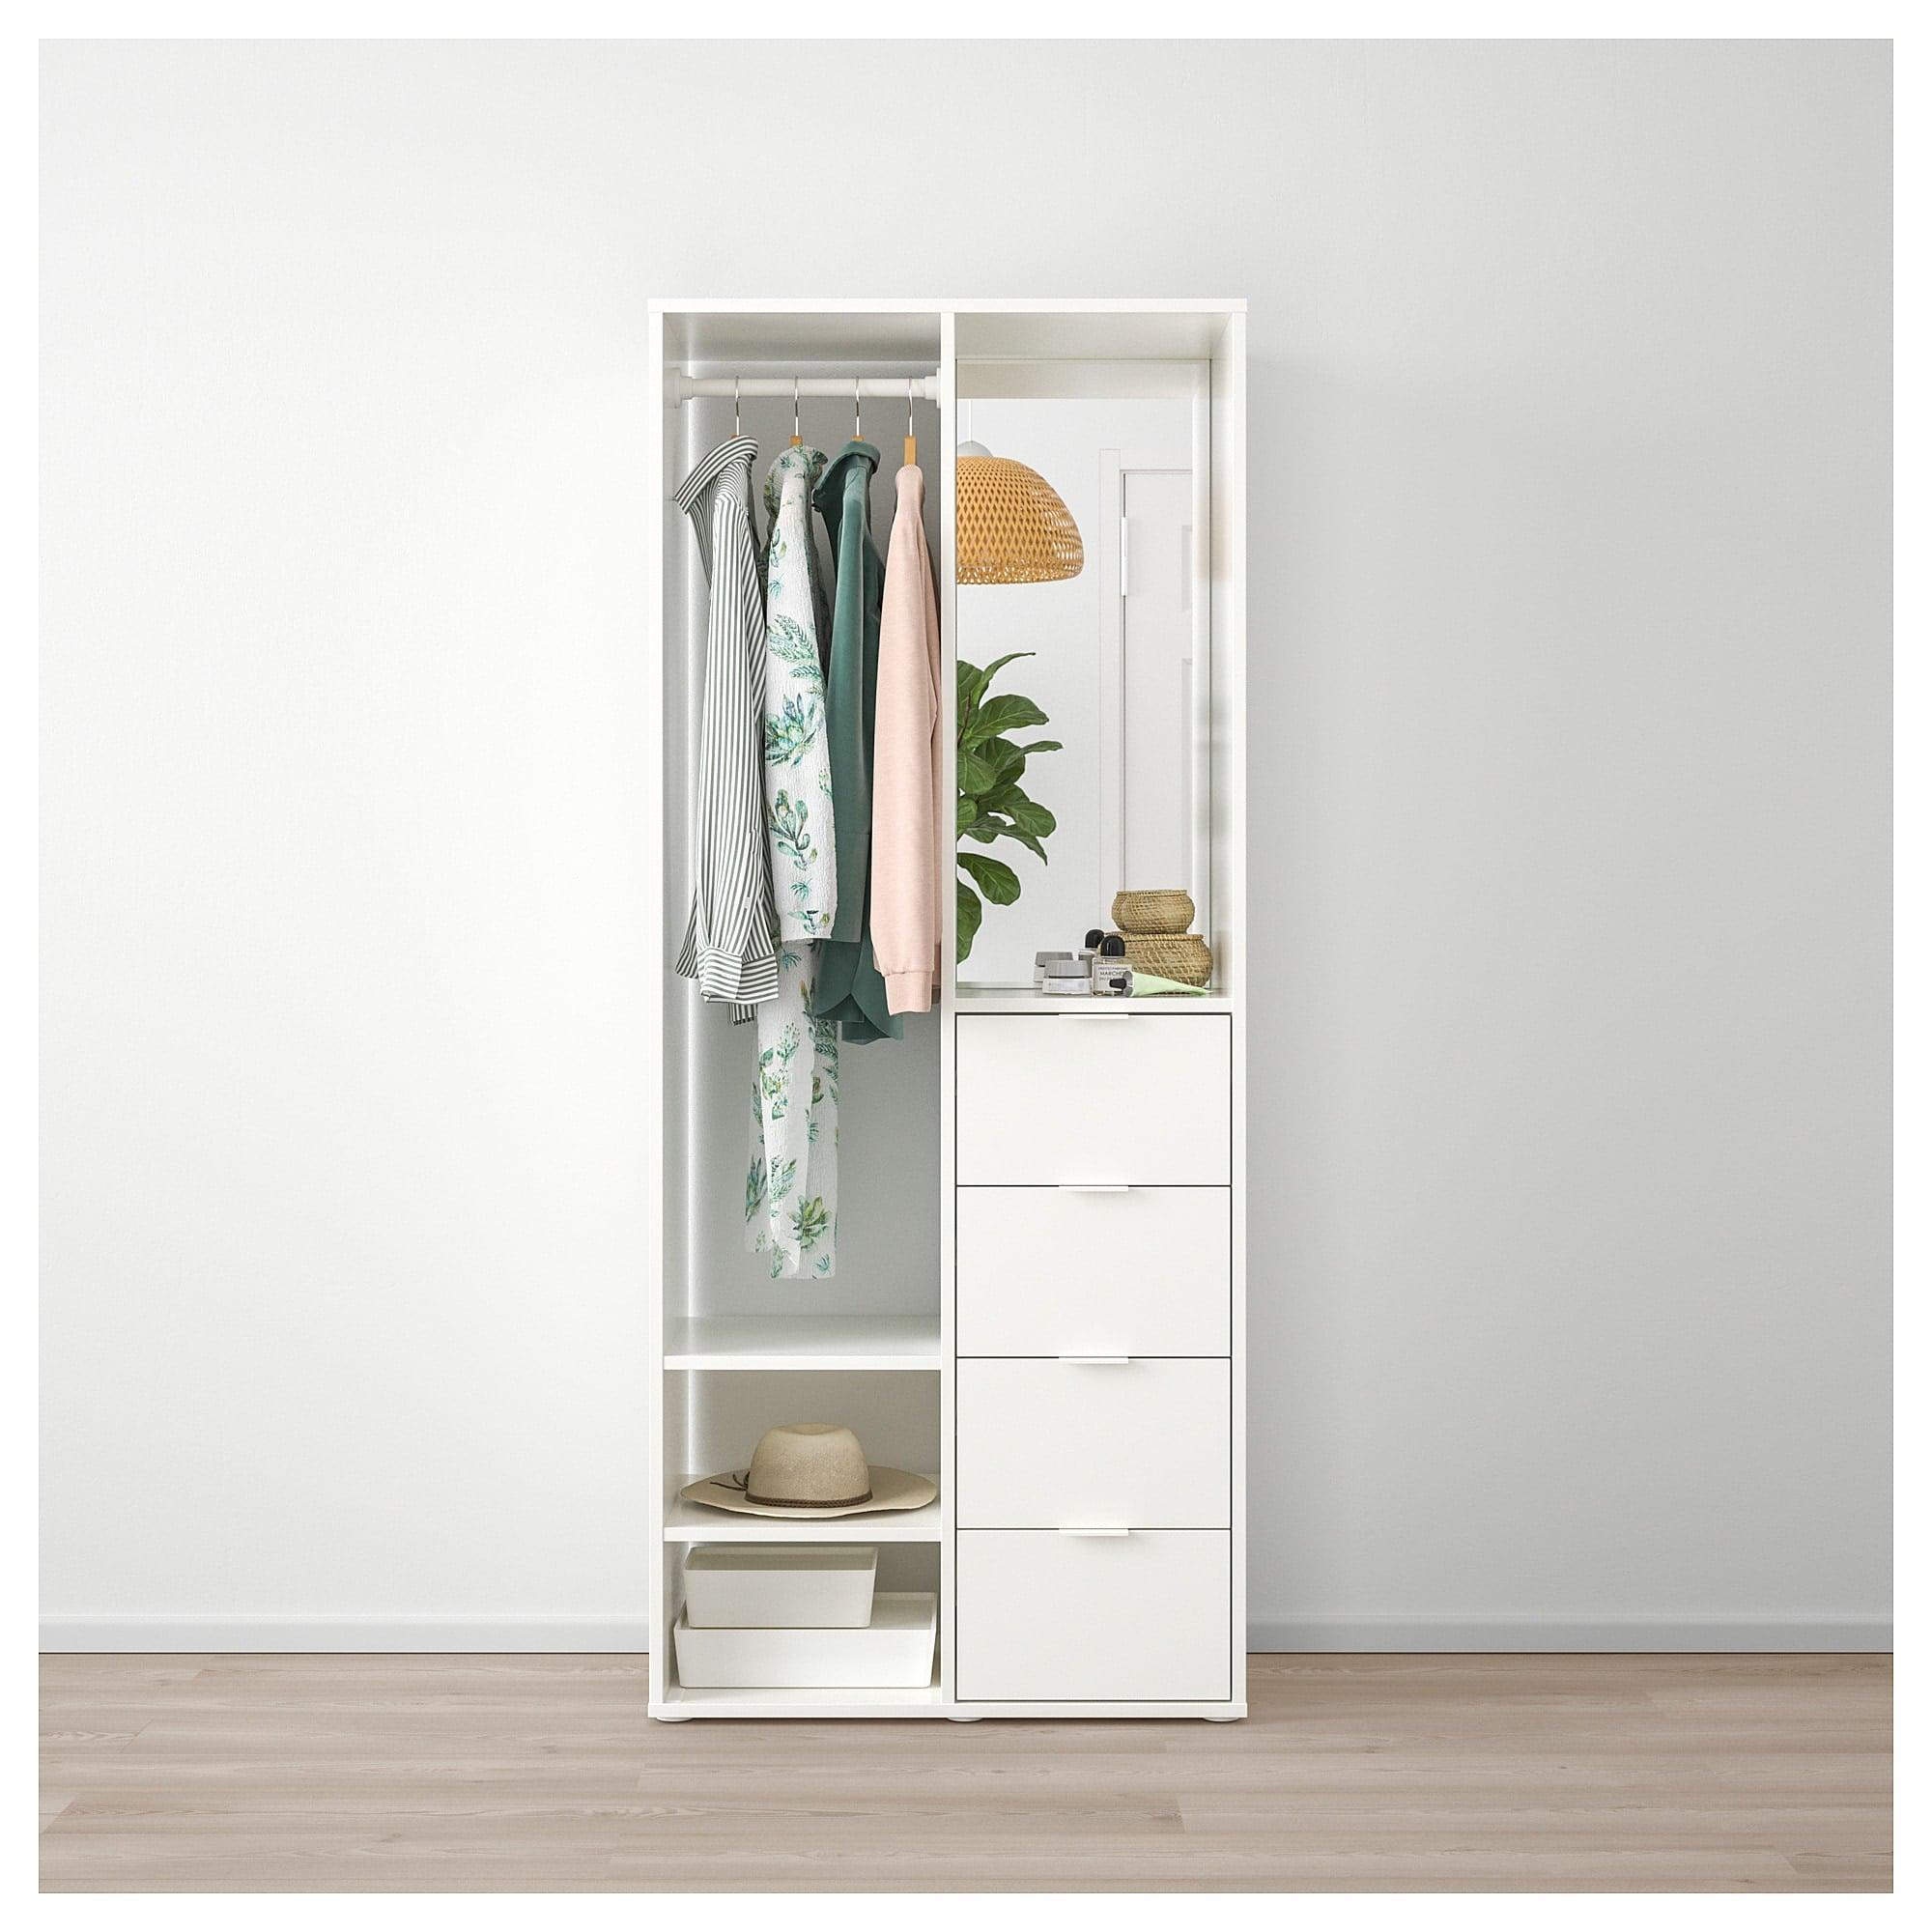 Ikea Has All of the Space-Saving Furniture Your Small ...